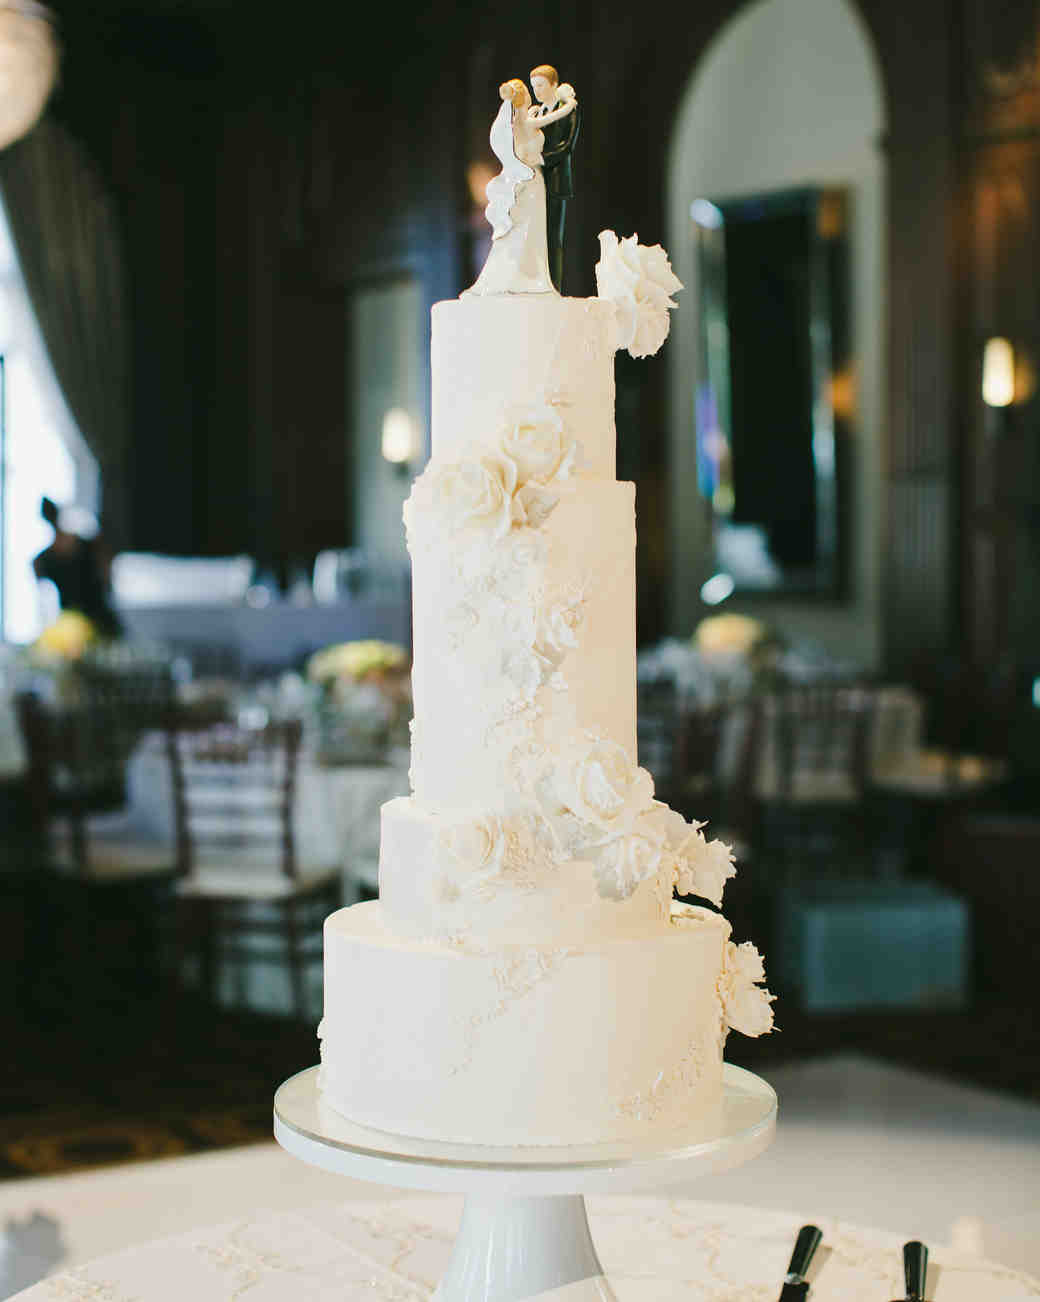 large white wedding cake with fondant flowers and topper